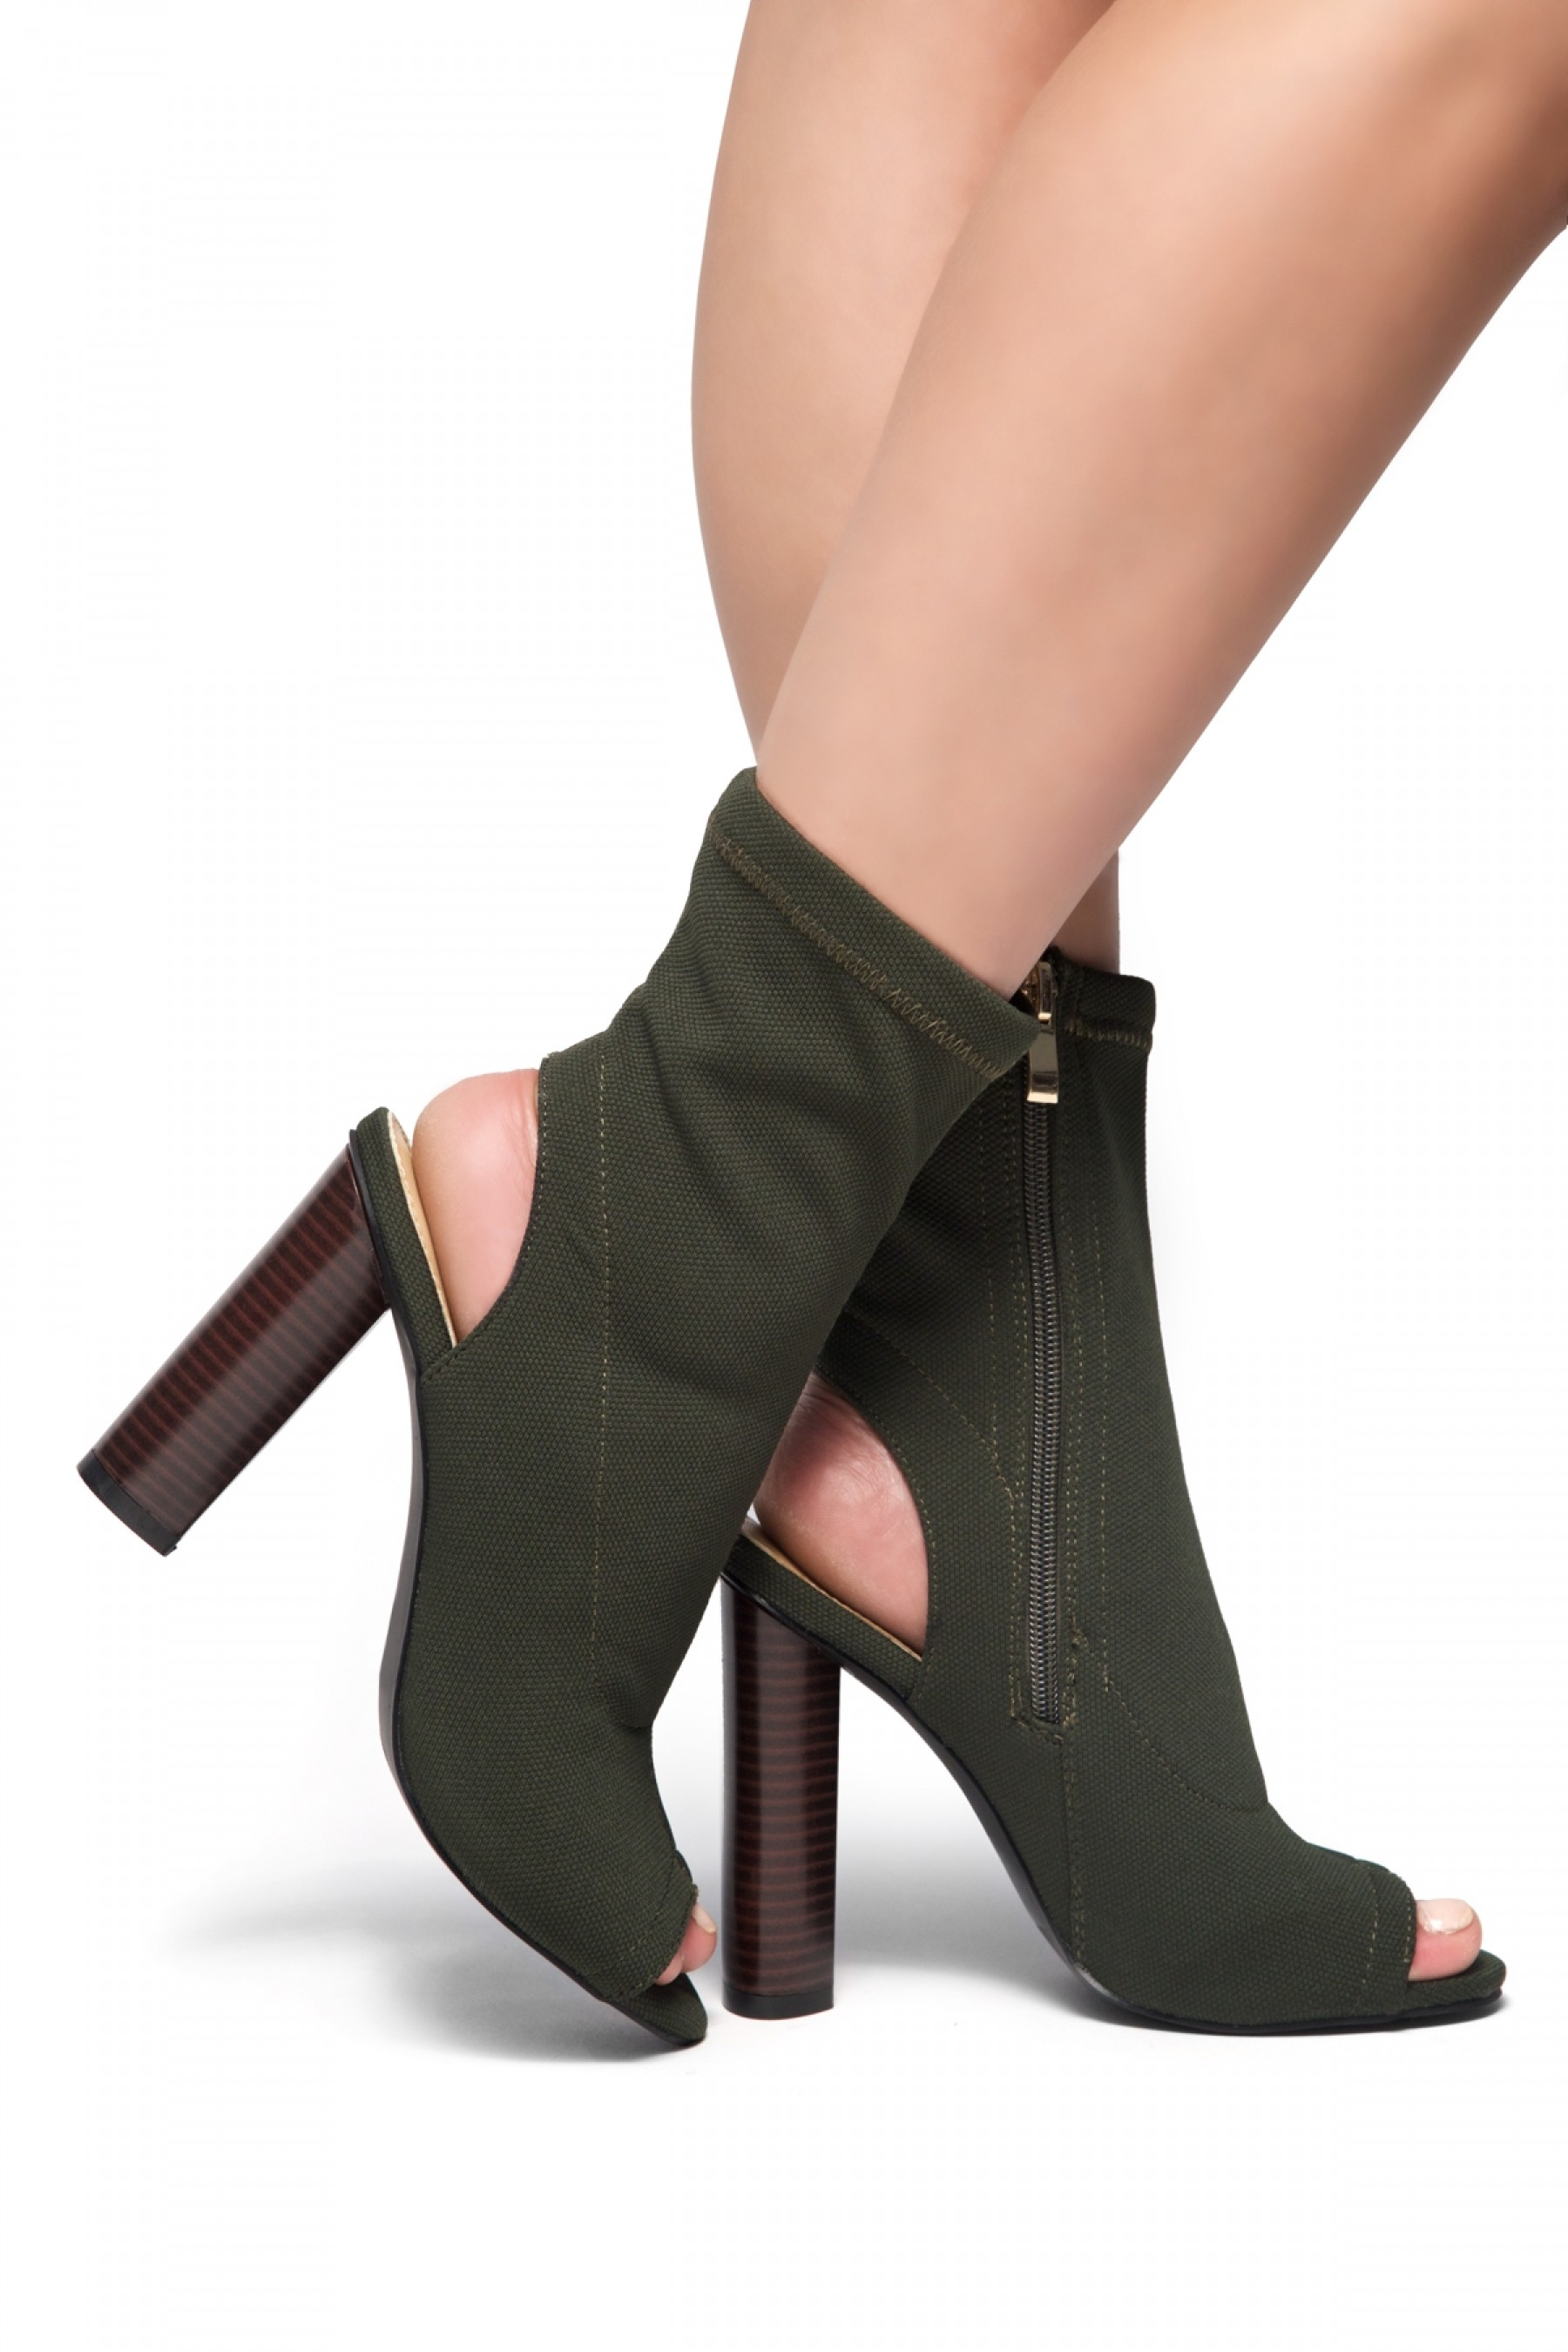 HerStyle Mingglee Peep Toe Cutout Chunky Heeled Booties - Olive